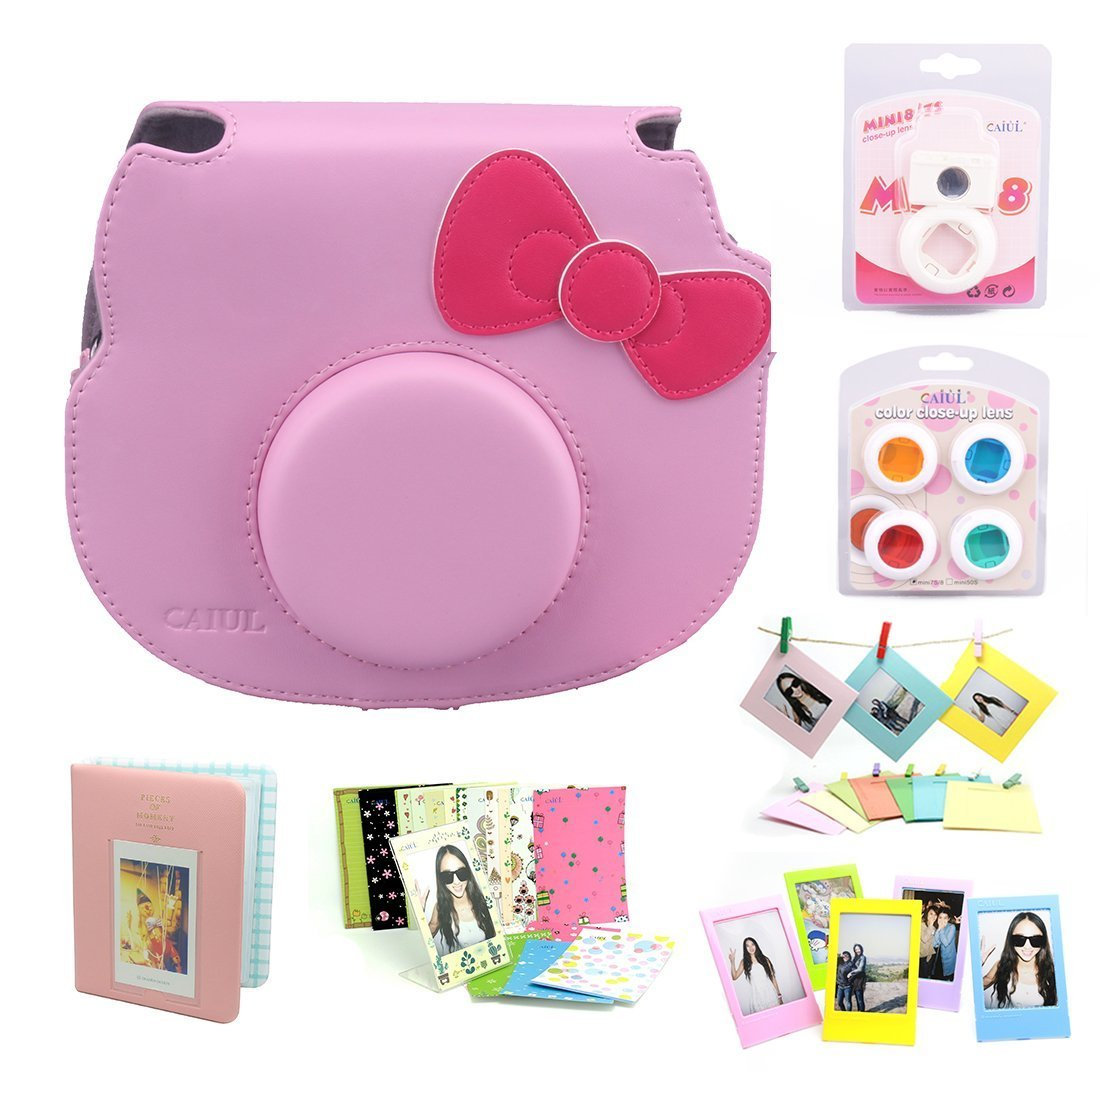 Amazon CAIUL 7 In 1 Hello Kitty Camera Accessories BundlePink Case Mini Album Close Up Selfie Lens 4 Colors Wall Hang